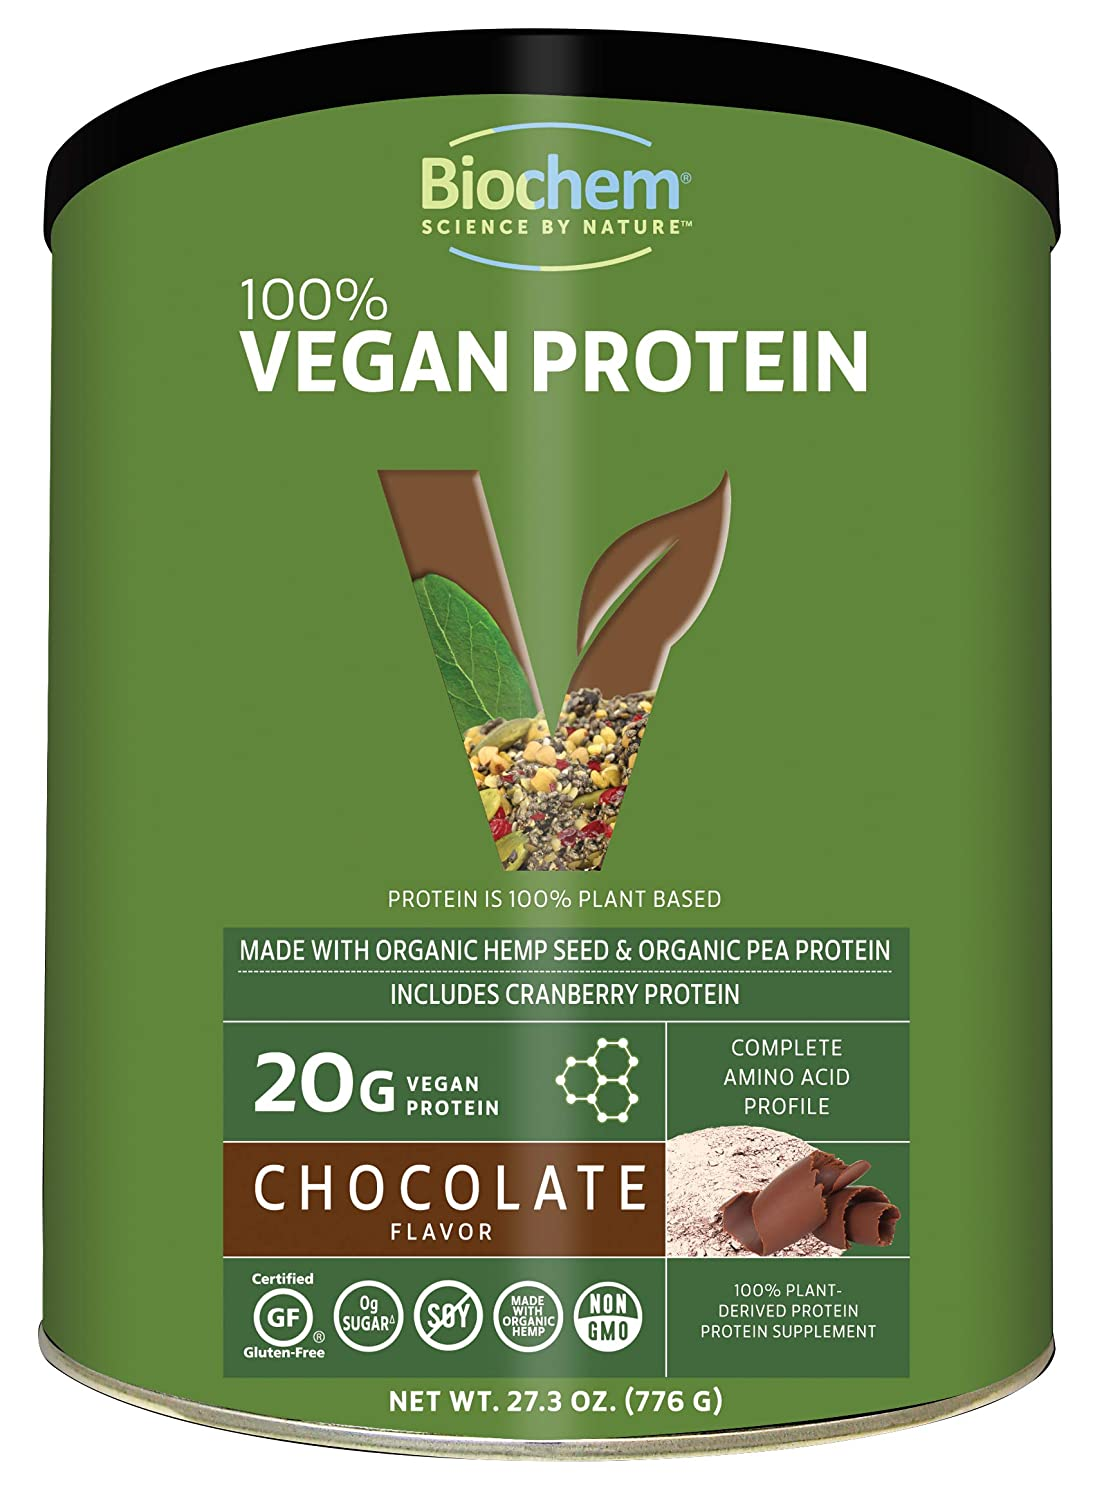 Biochem 100 Plant Protein – Chocolate Flavor – 27.3 Oz – 20g Vegan Protein – Complete Amino Acid Profile – KETO-Friendly – Hemp Seed – Pea Protein – Cranberry – Matcha Tea – Cocoa – Refreshing Taste